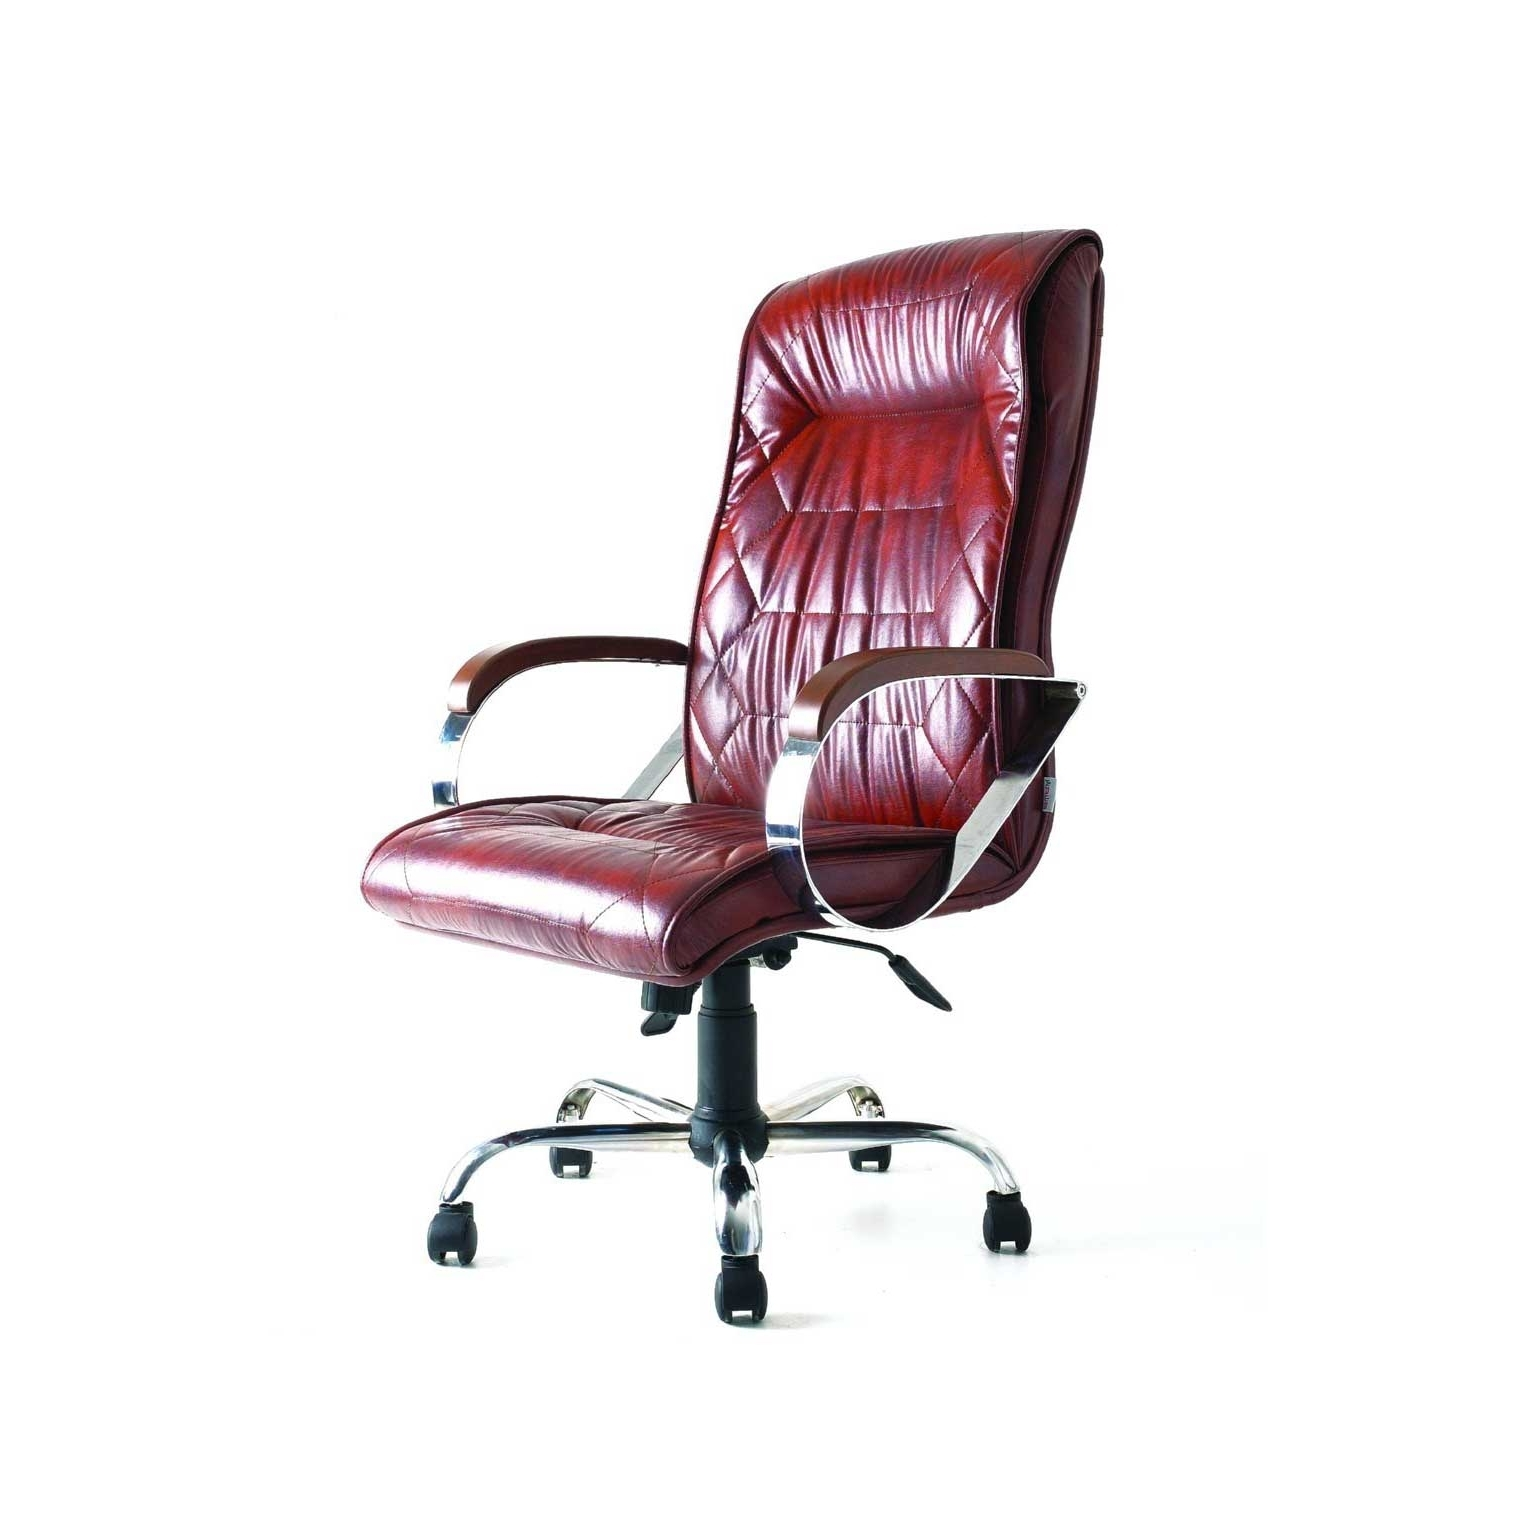 Red Office Chairs, Luxury Executive Office Red Leather Executive Throughout Most Recently Released Red Leather Executive Office Chairs (View 18 of 20)